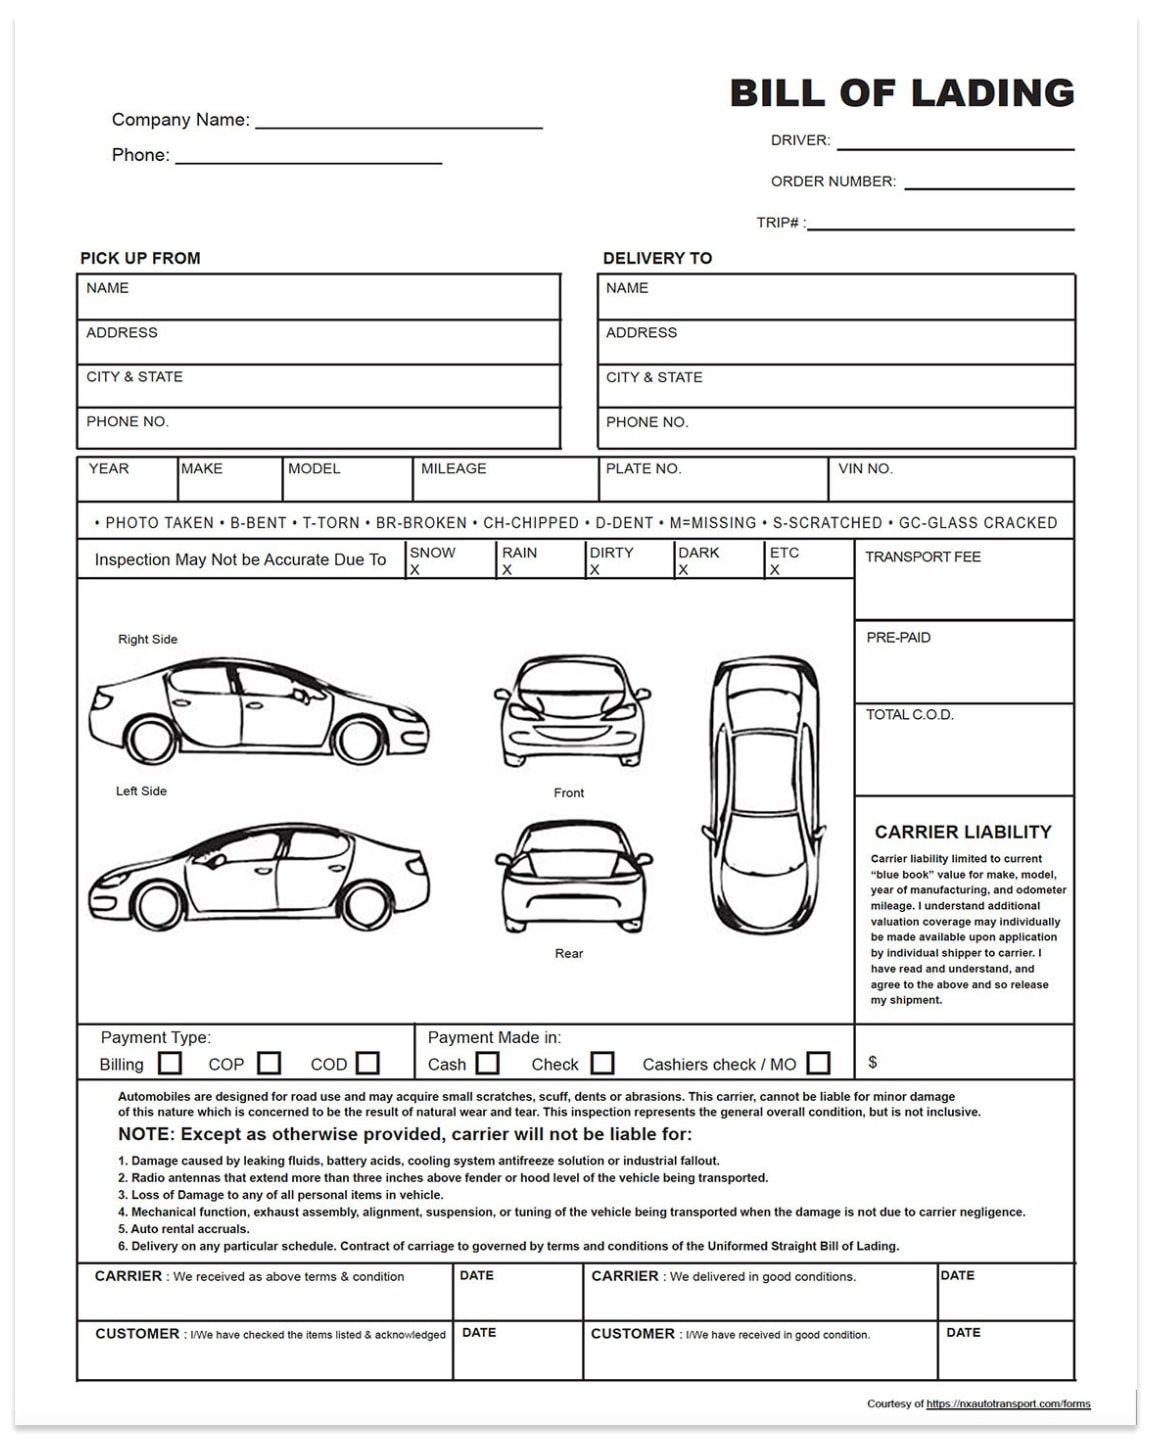 Bill of lading car shipping